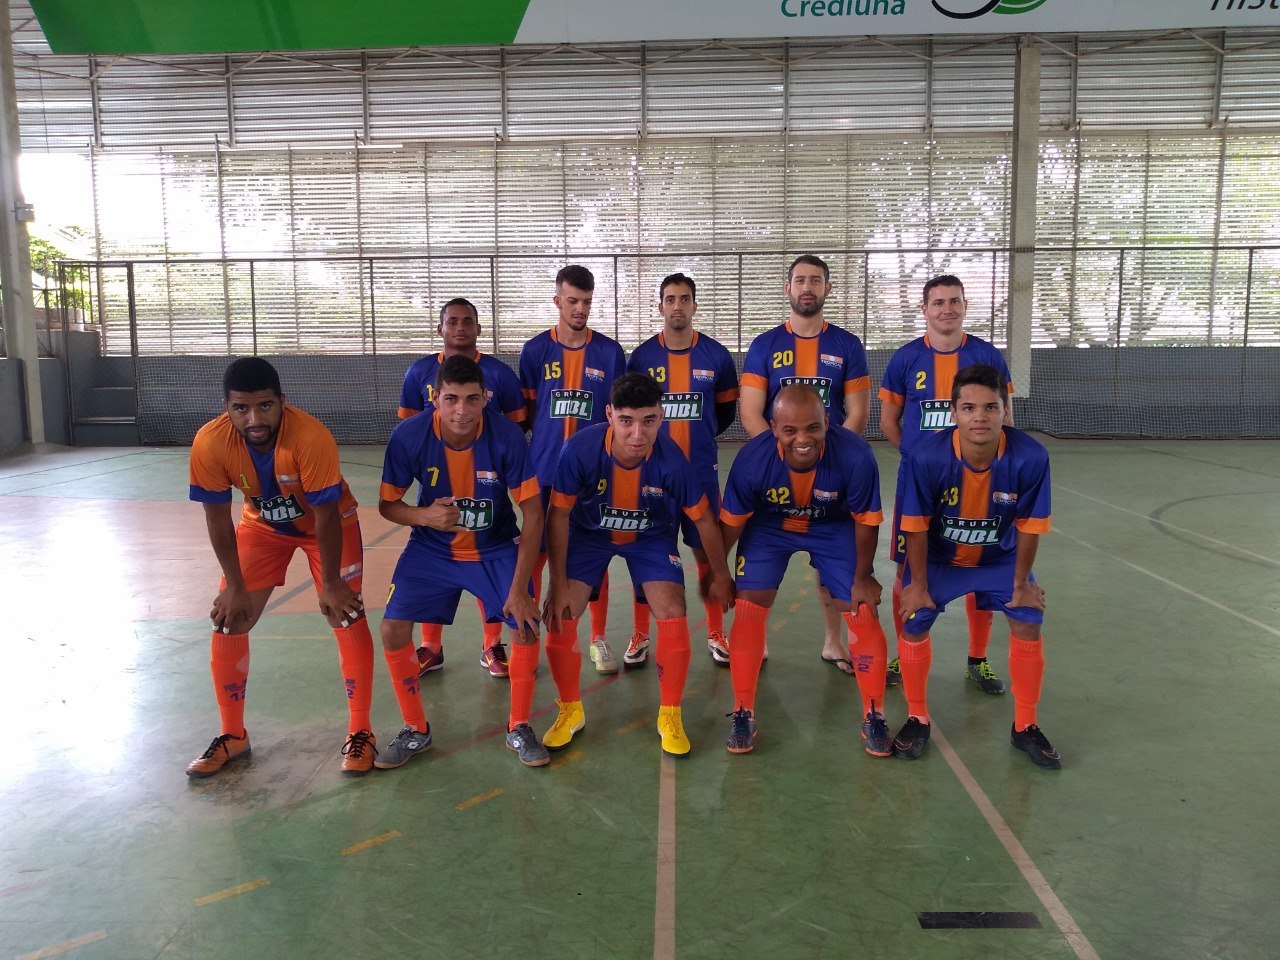 454b3ba098 ... Click to enlarge image tropical-futsal-3.jpeg ...